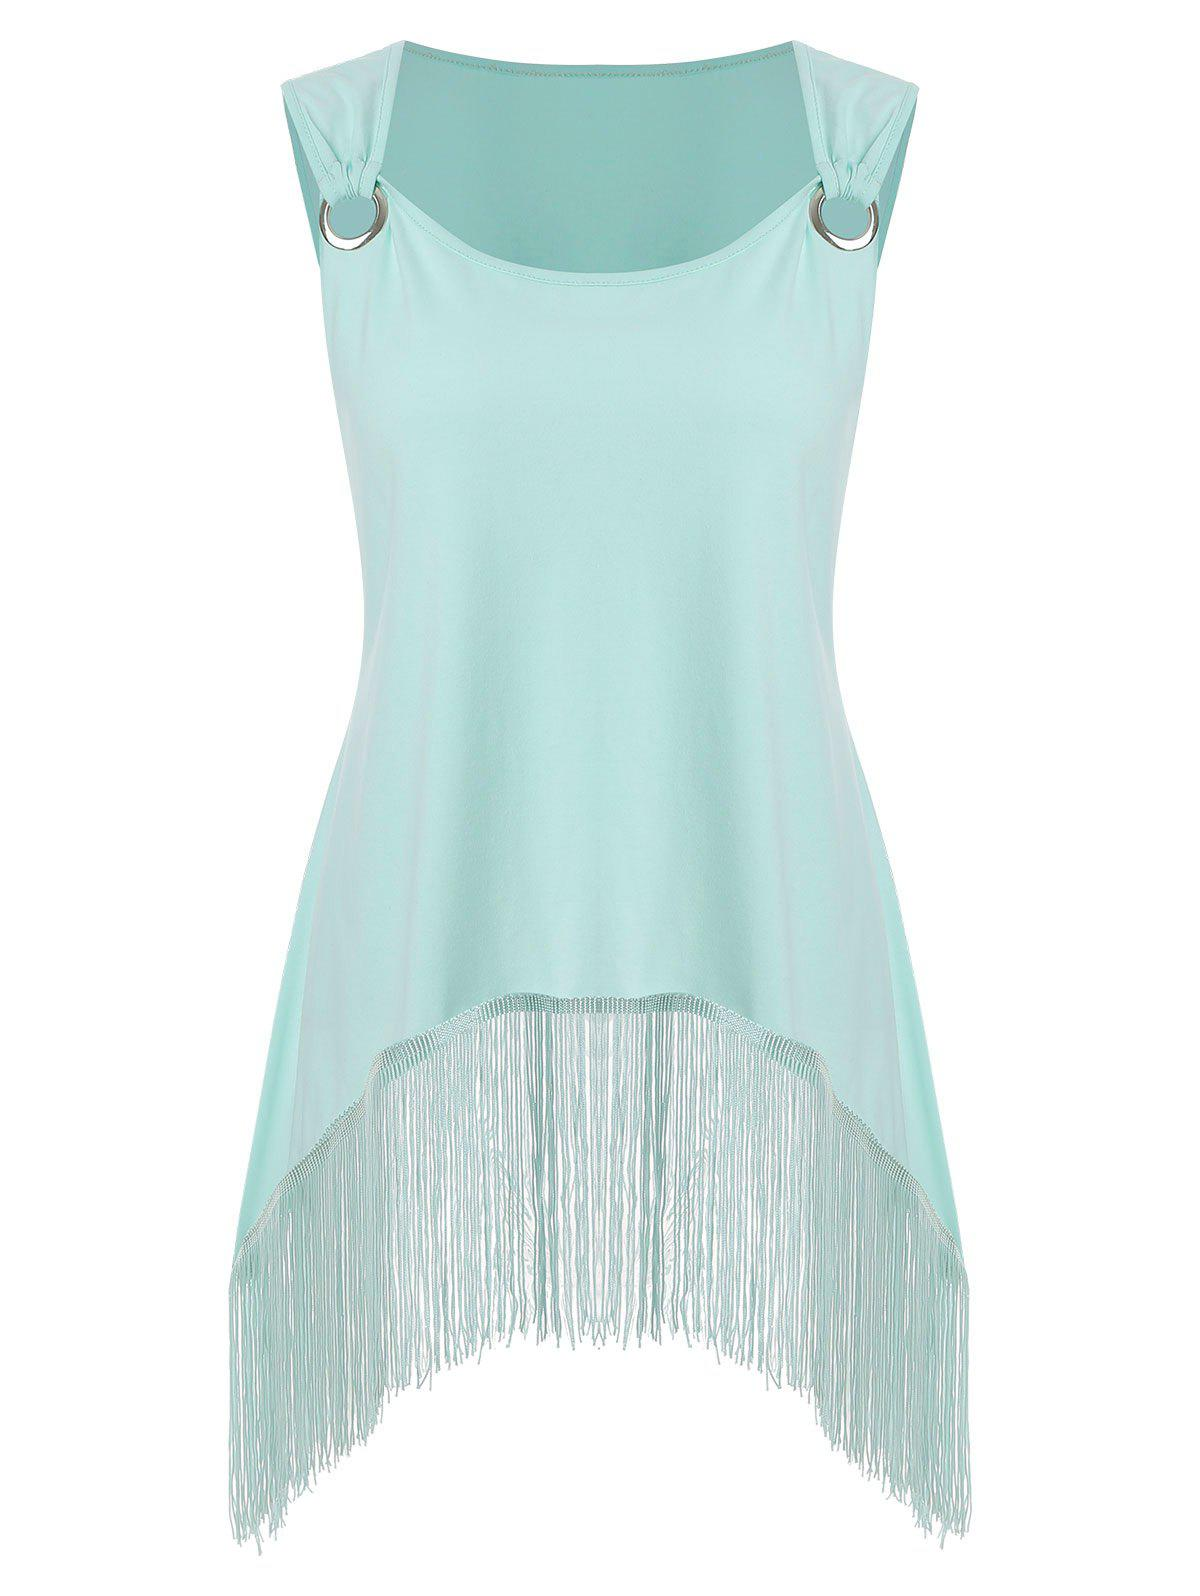 Fringes Metal Rings Plus Size Tank Top - PALE BLUE LILY 2X